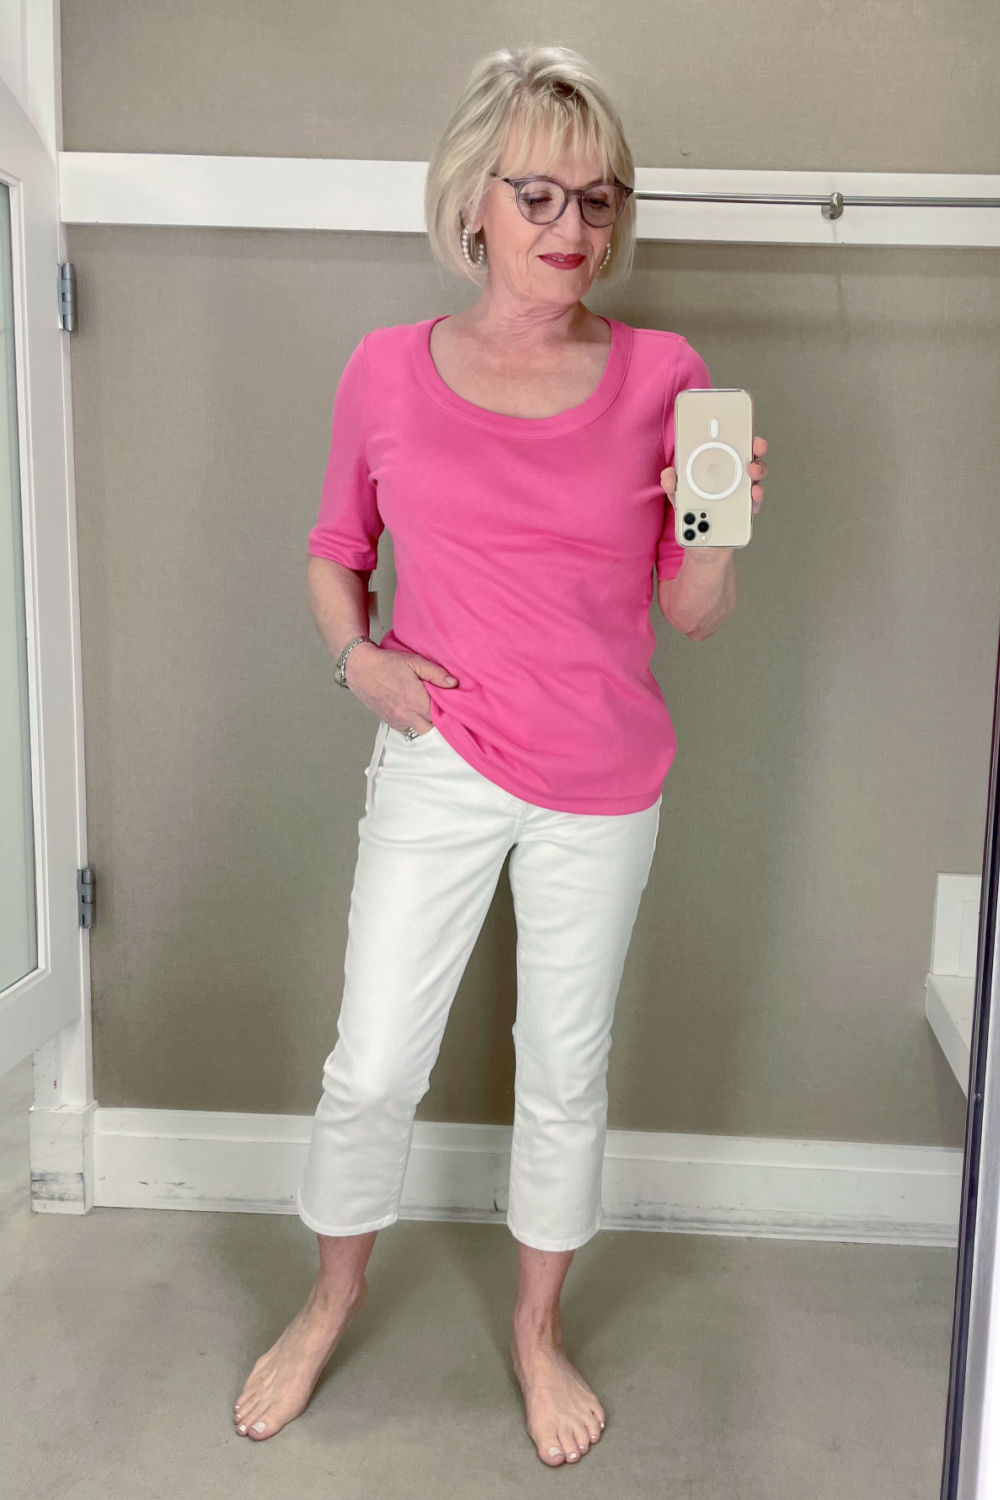 over 50 woman trying on wuite crop flare jeans with pink top